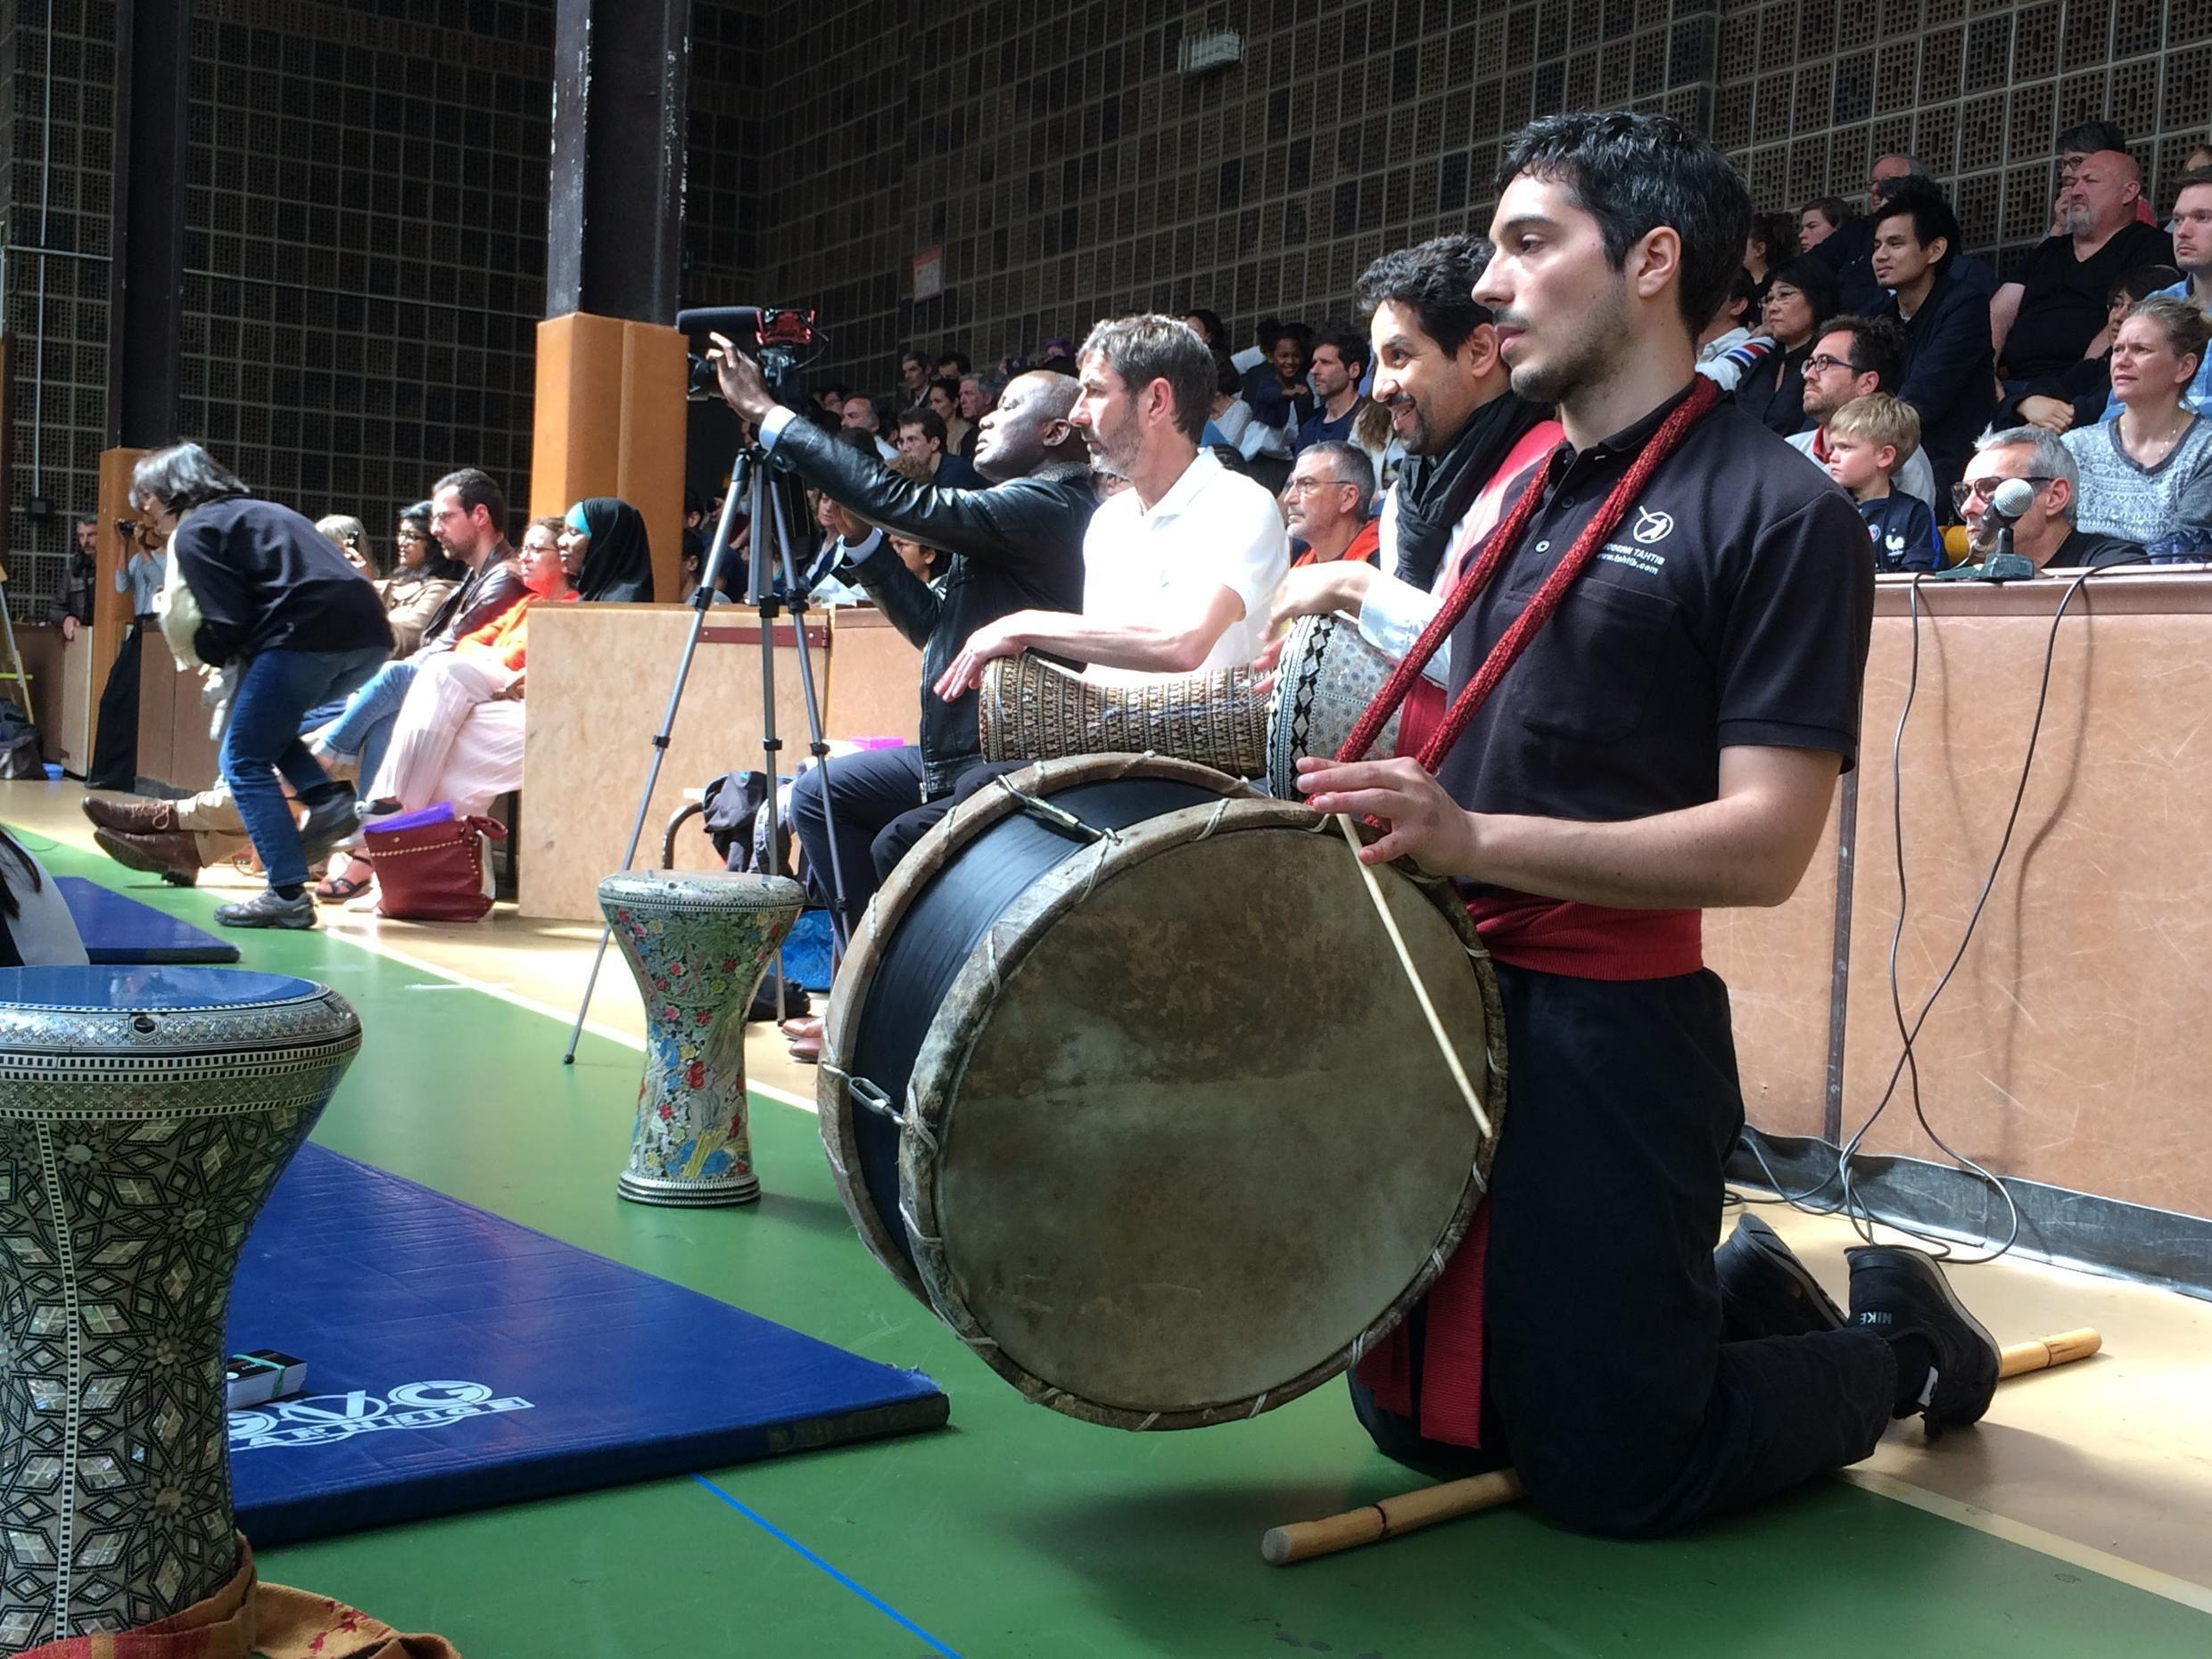 Musicians modulate the Tahtib match.